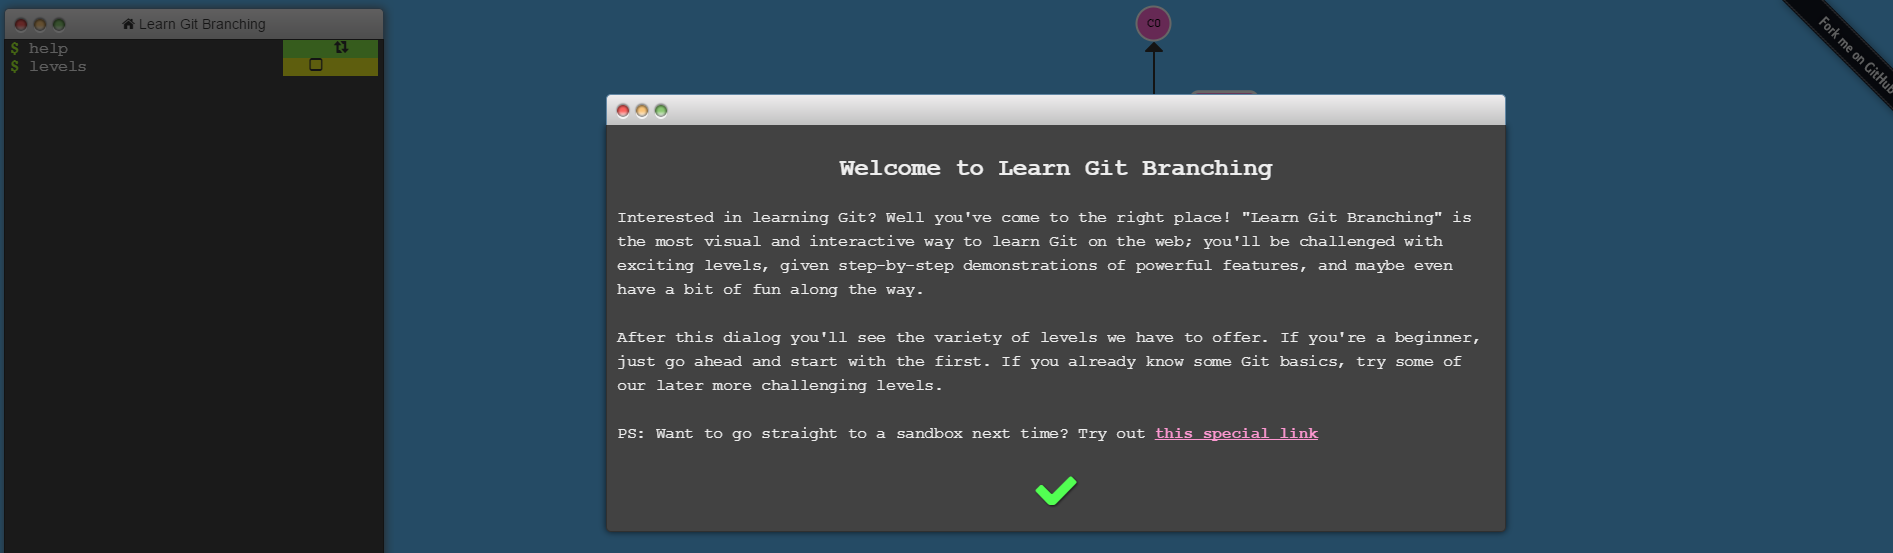 Learn Git Branching - Home | Facebook